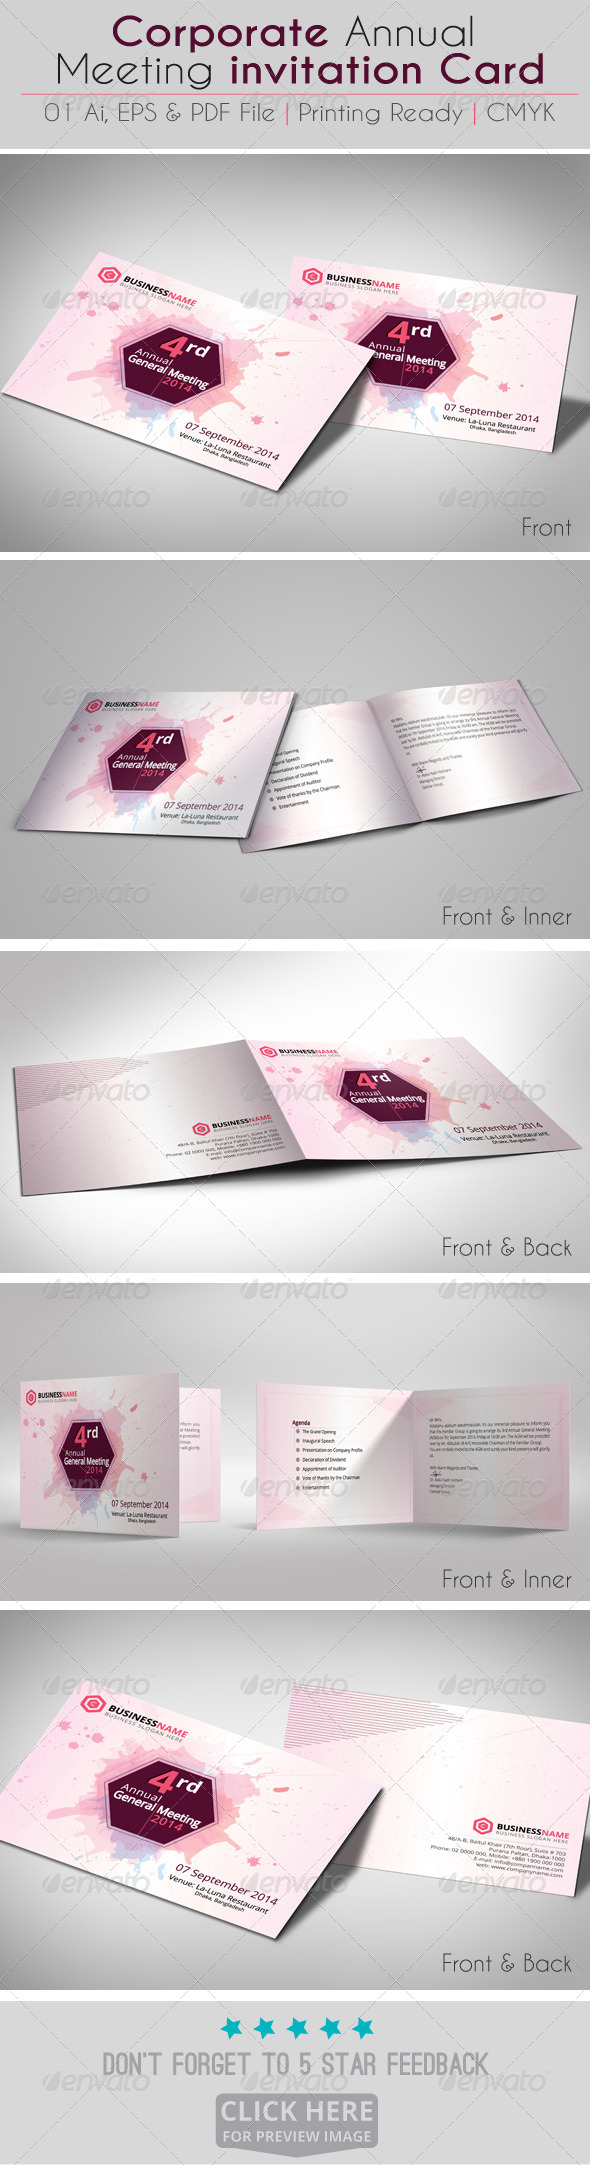 Corporate Annual Meeting invitation Card V02